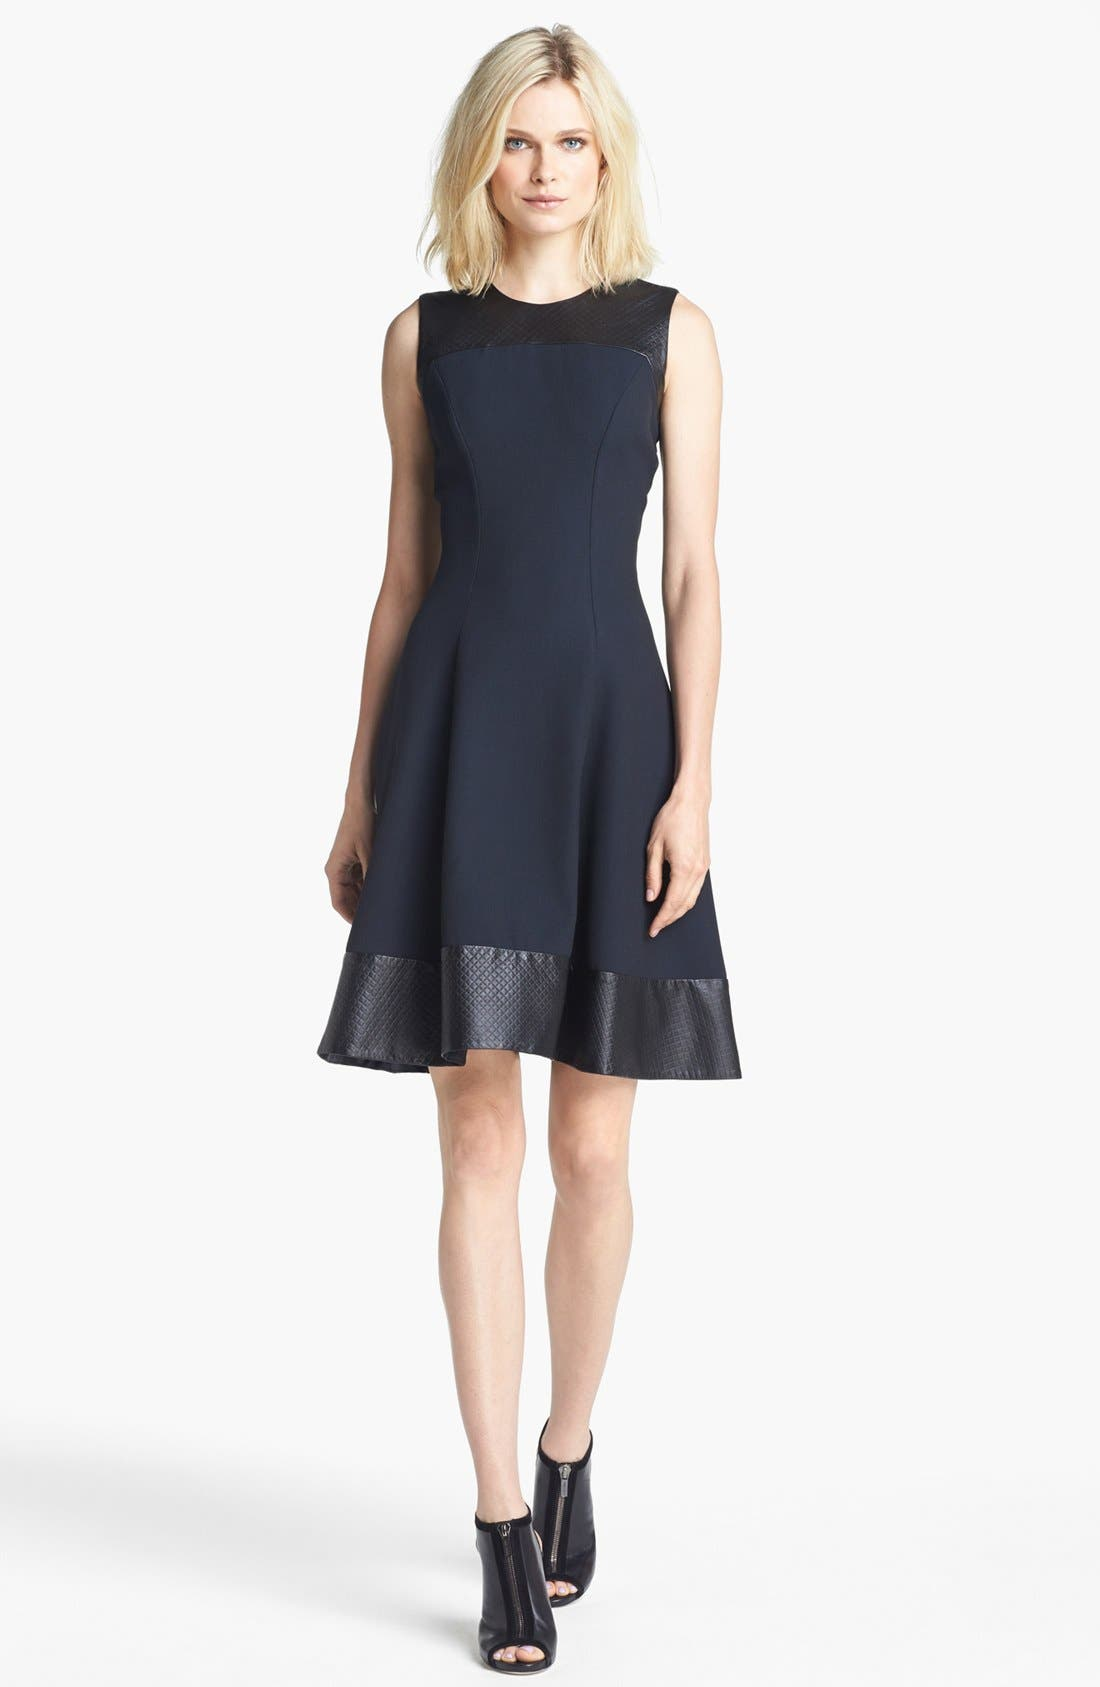 Alternate Image 1 Selected - L'AGENCE Embossed Leather Trim Ponte Knit Dress